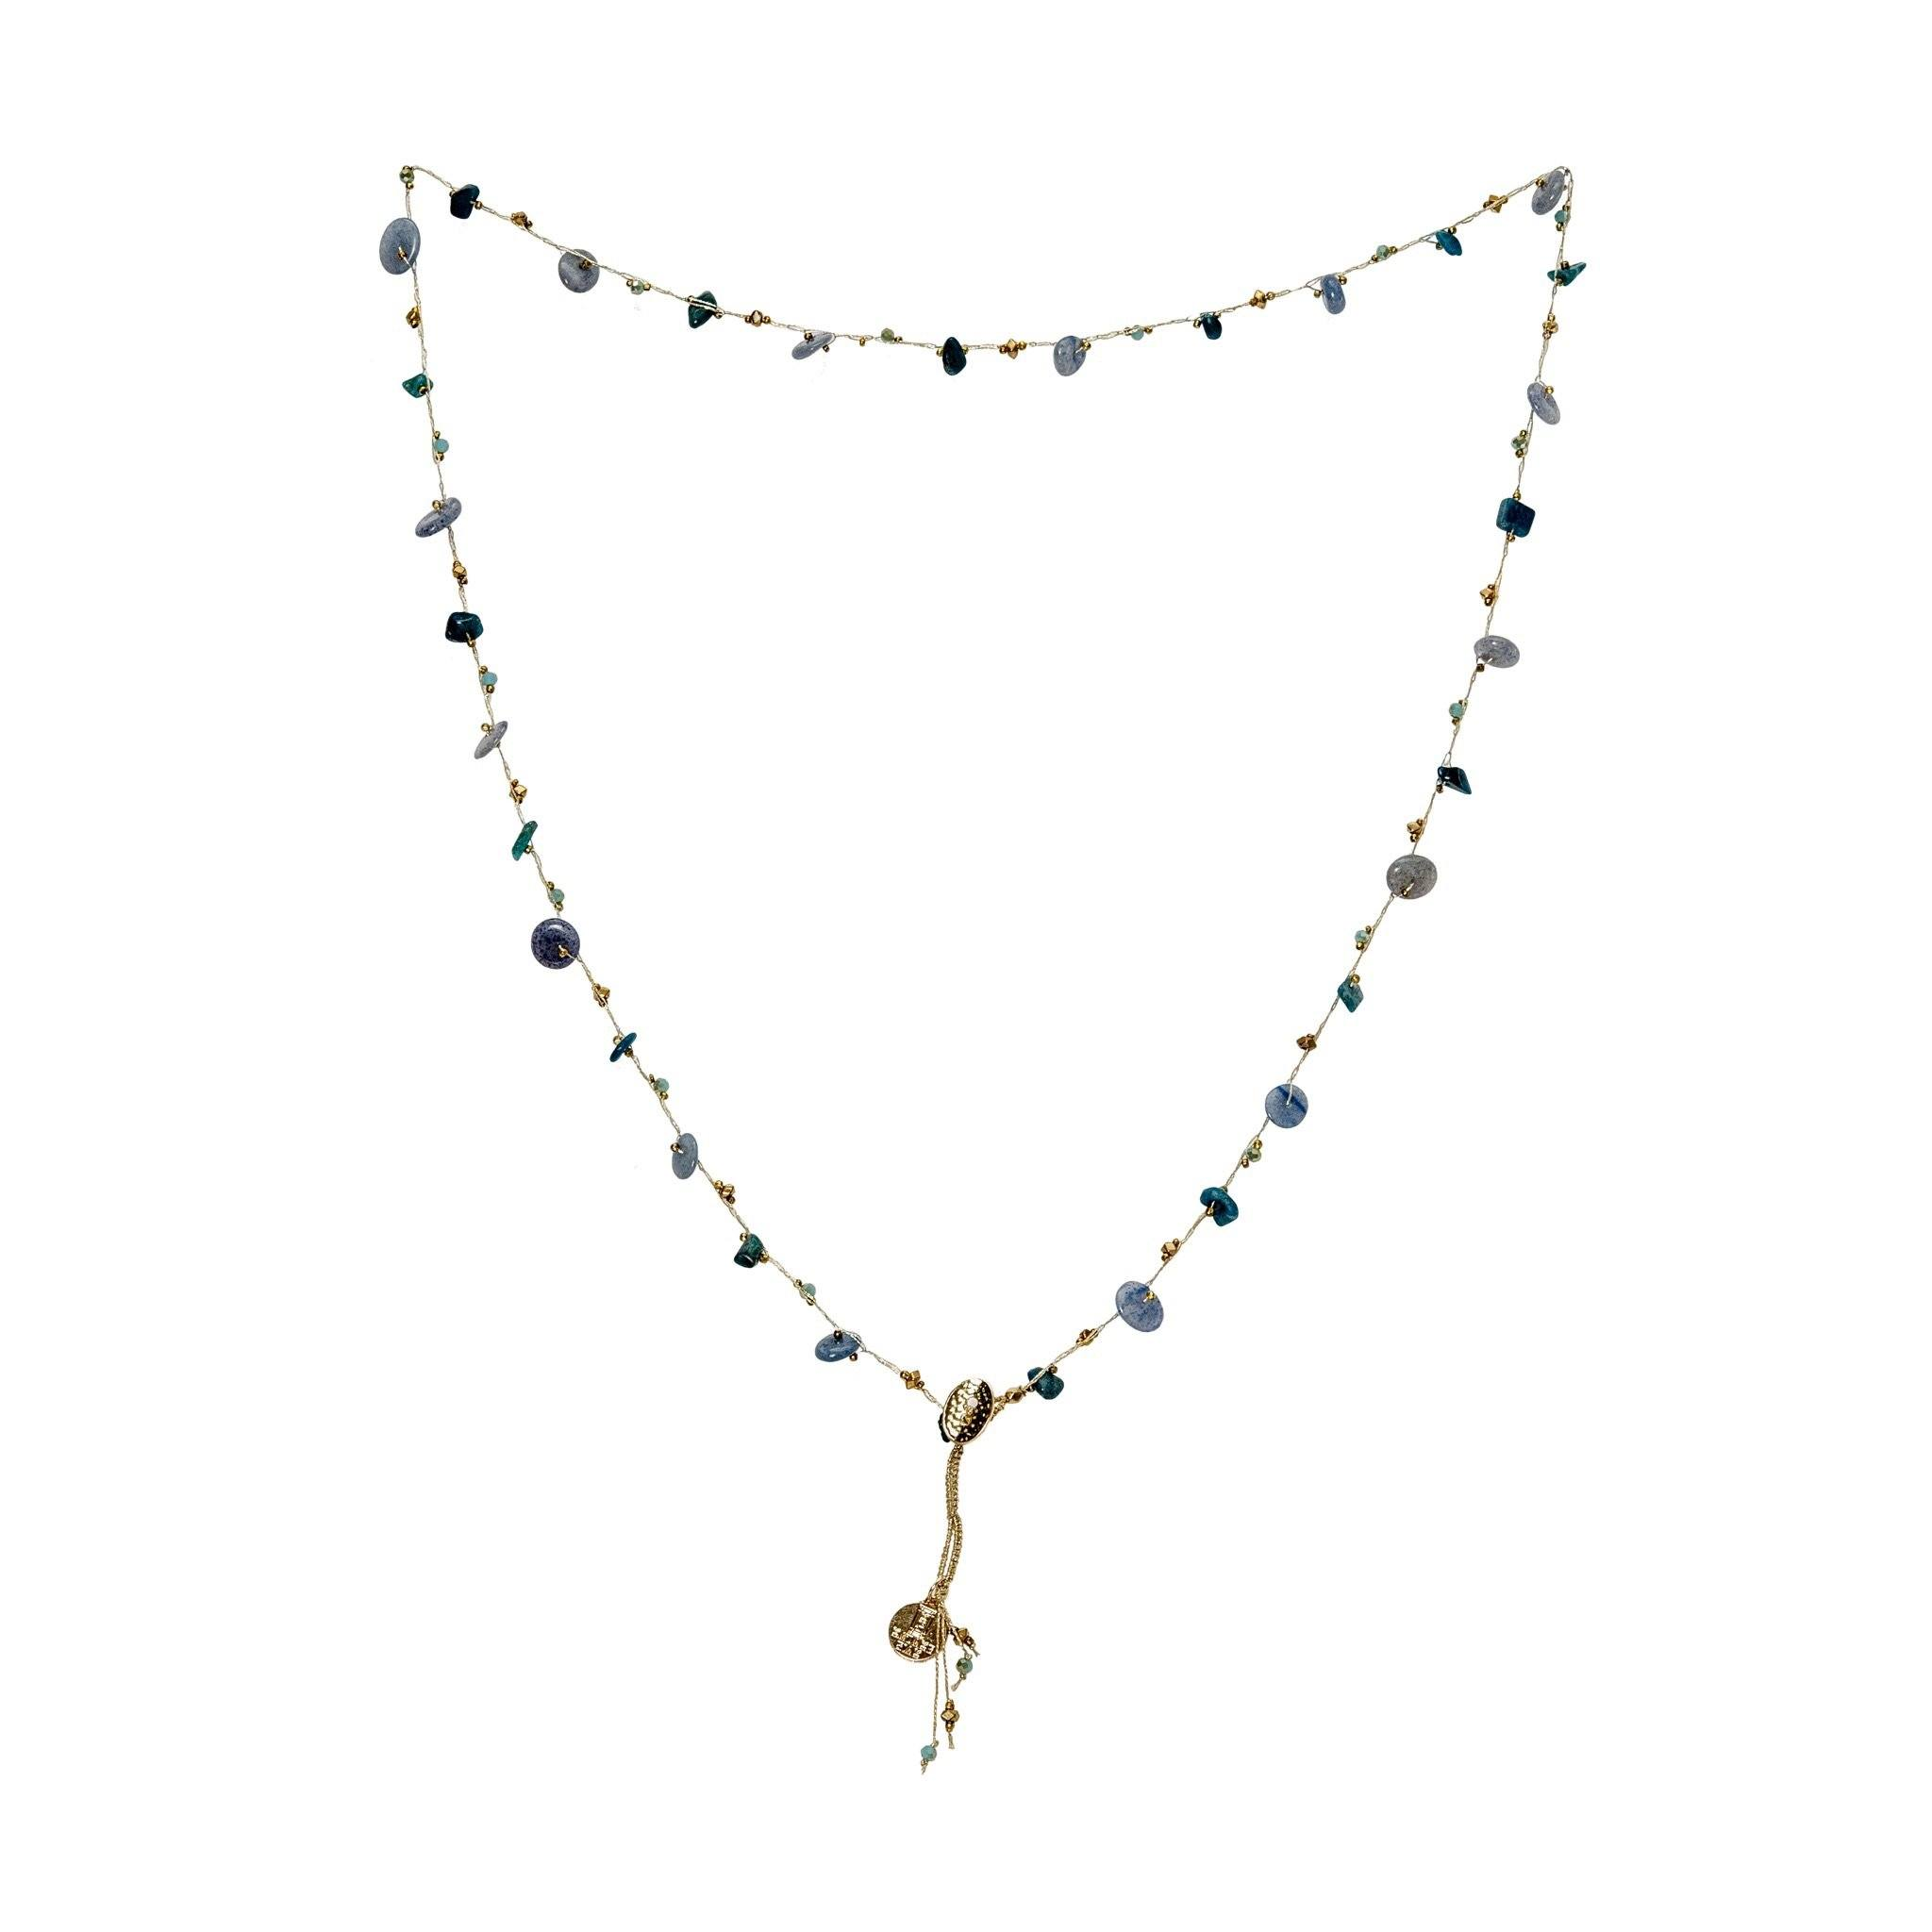 LUKA blue chalcedony necklace